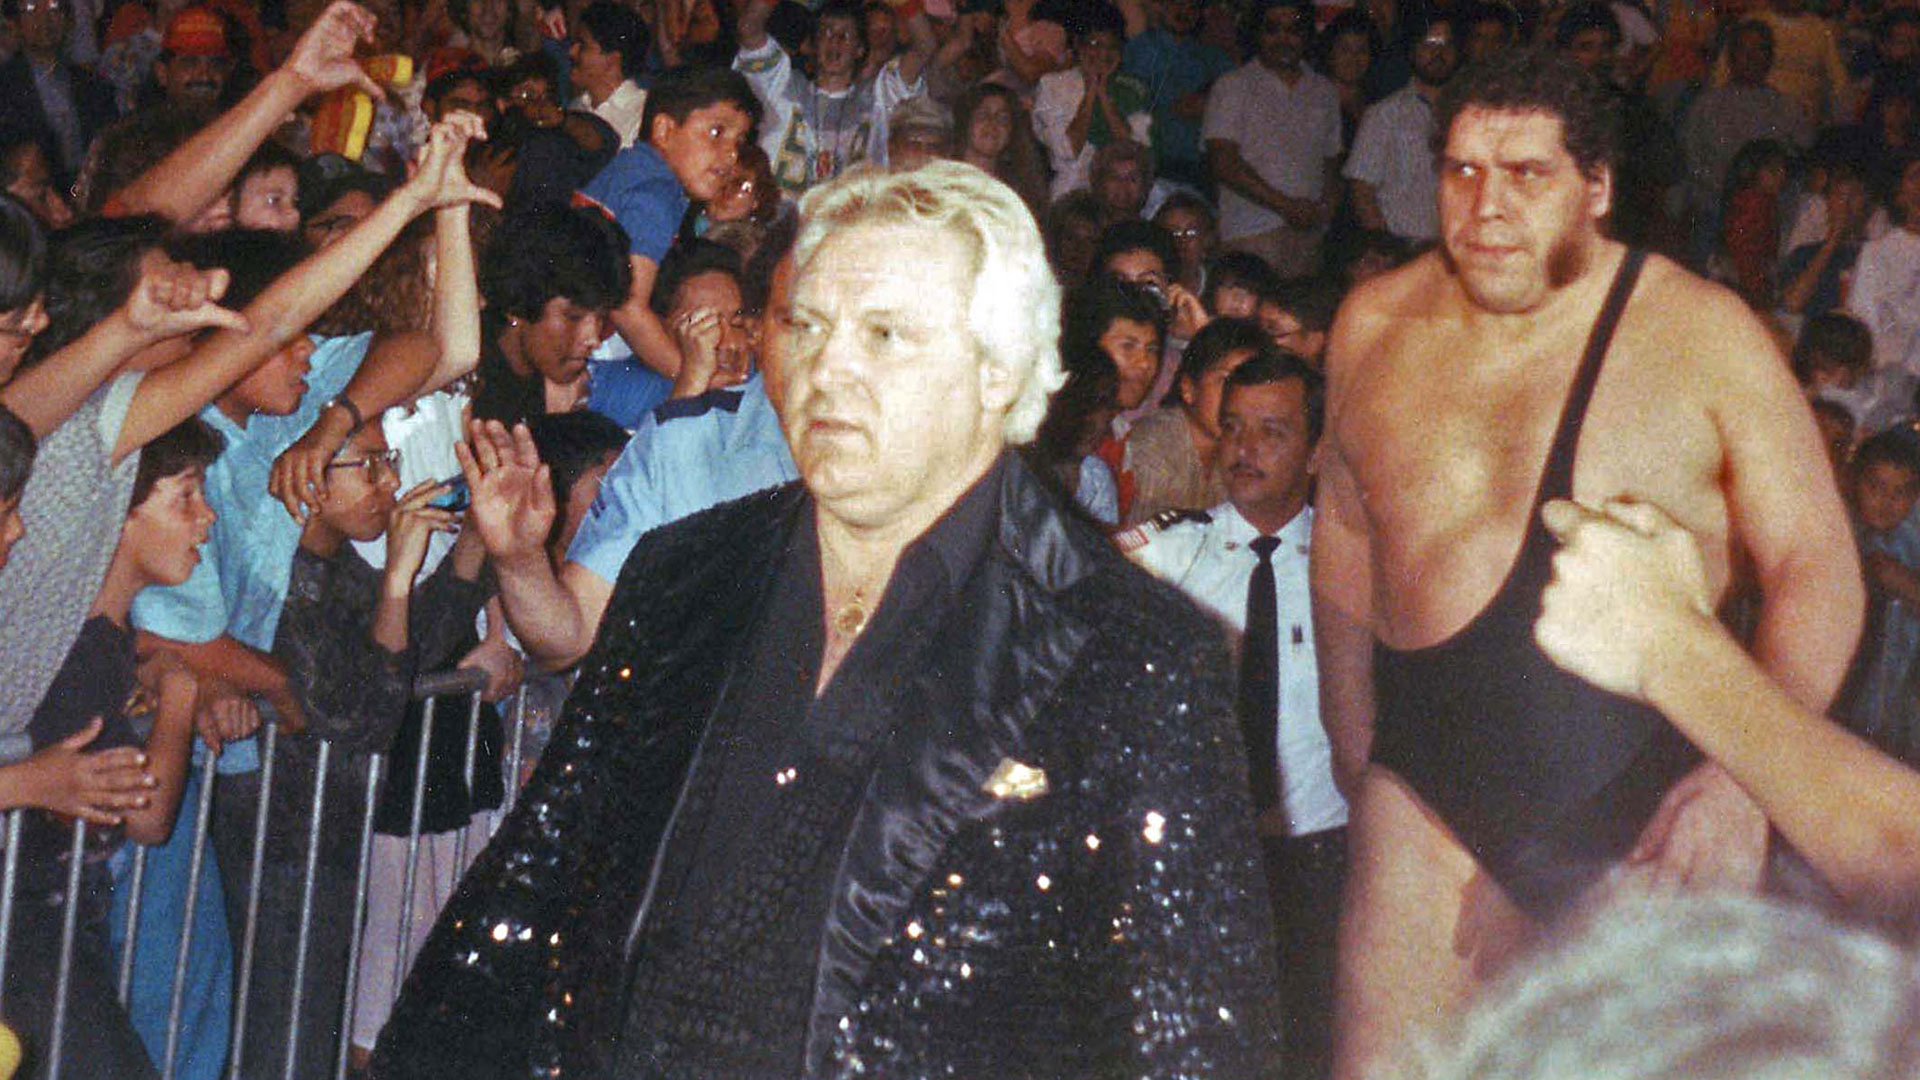 Bobby Heenan and Andre the Giant46068726-159532